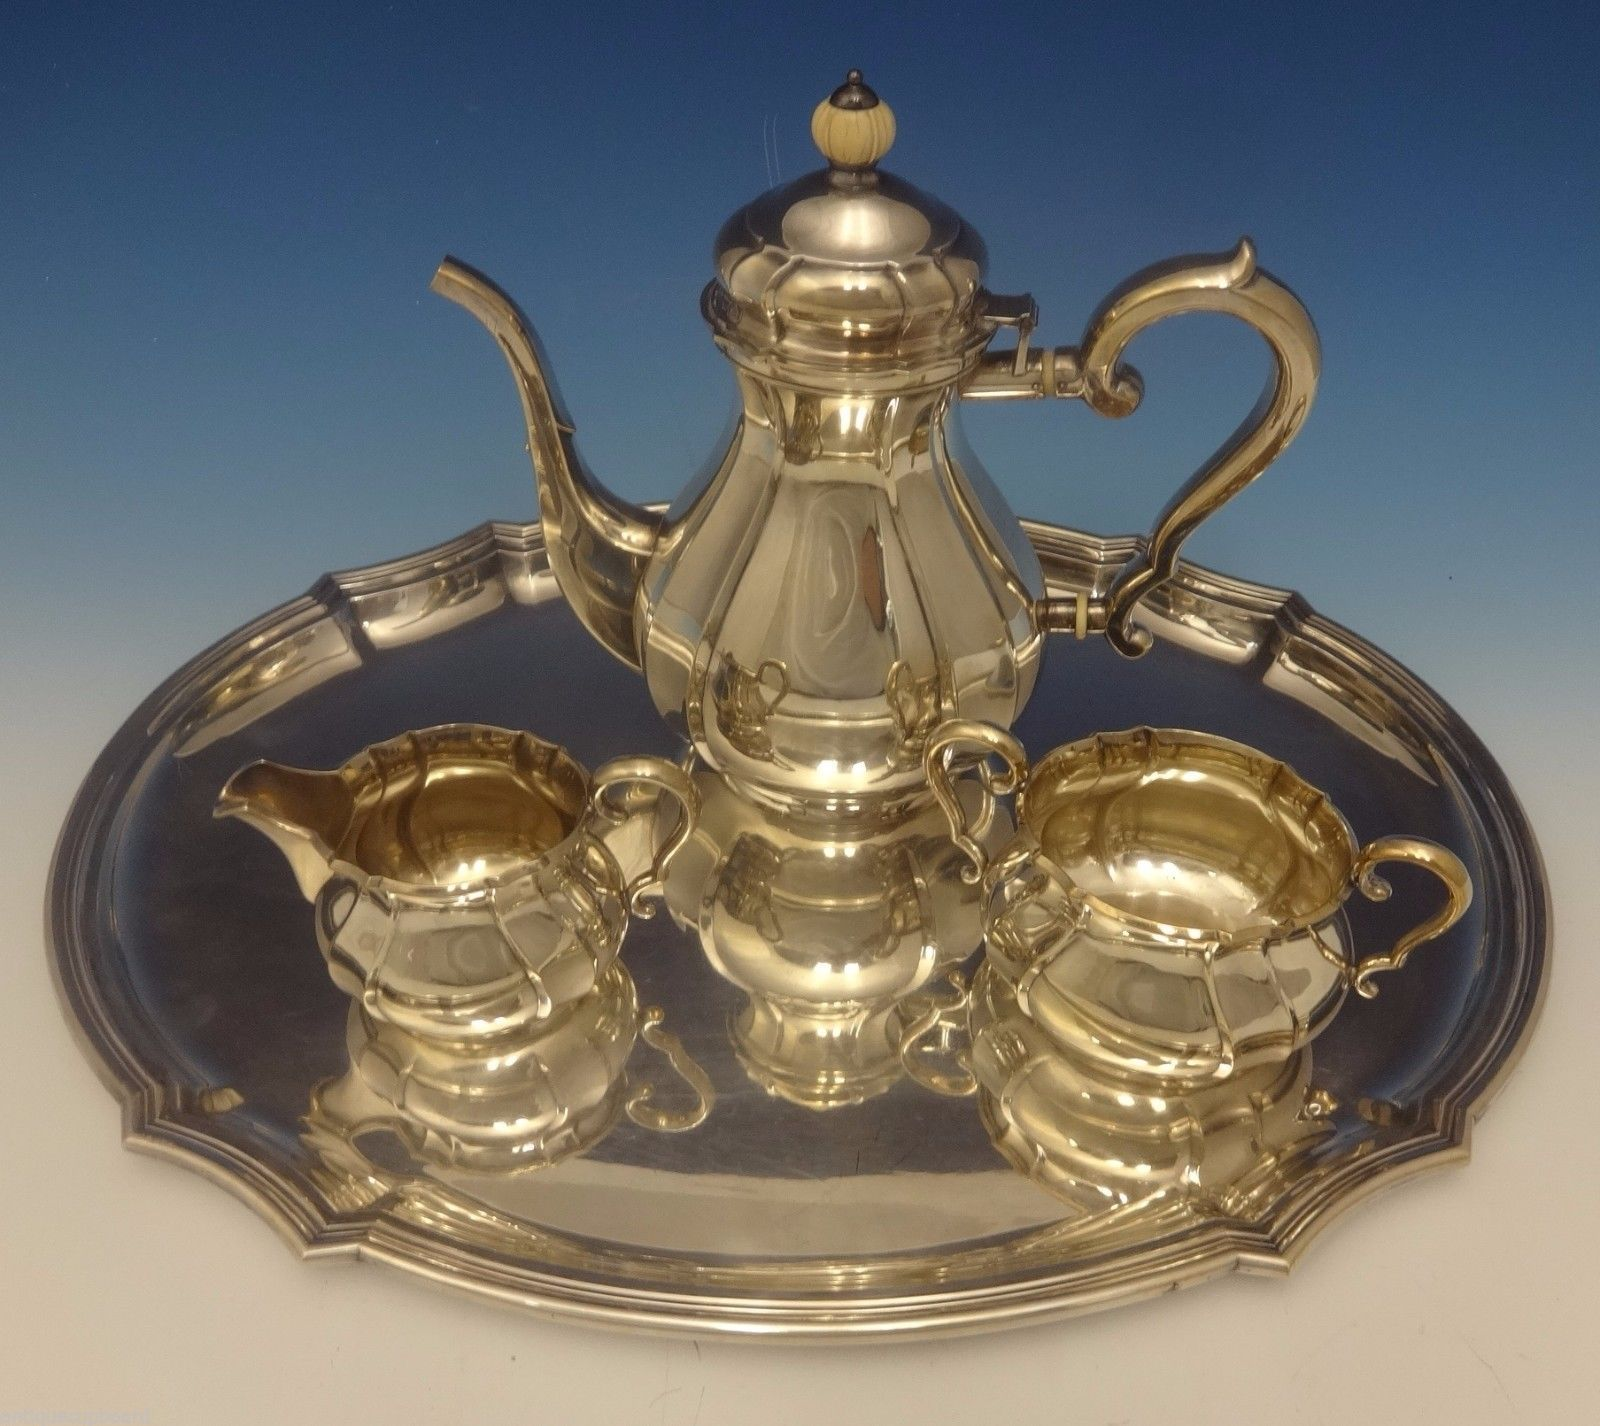 C.C. Hermann Danish Sterling Silver Tea Set 3pc with Tray (#0442)